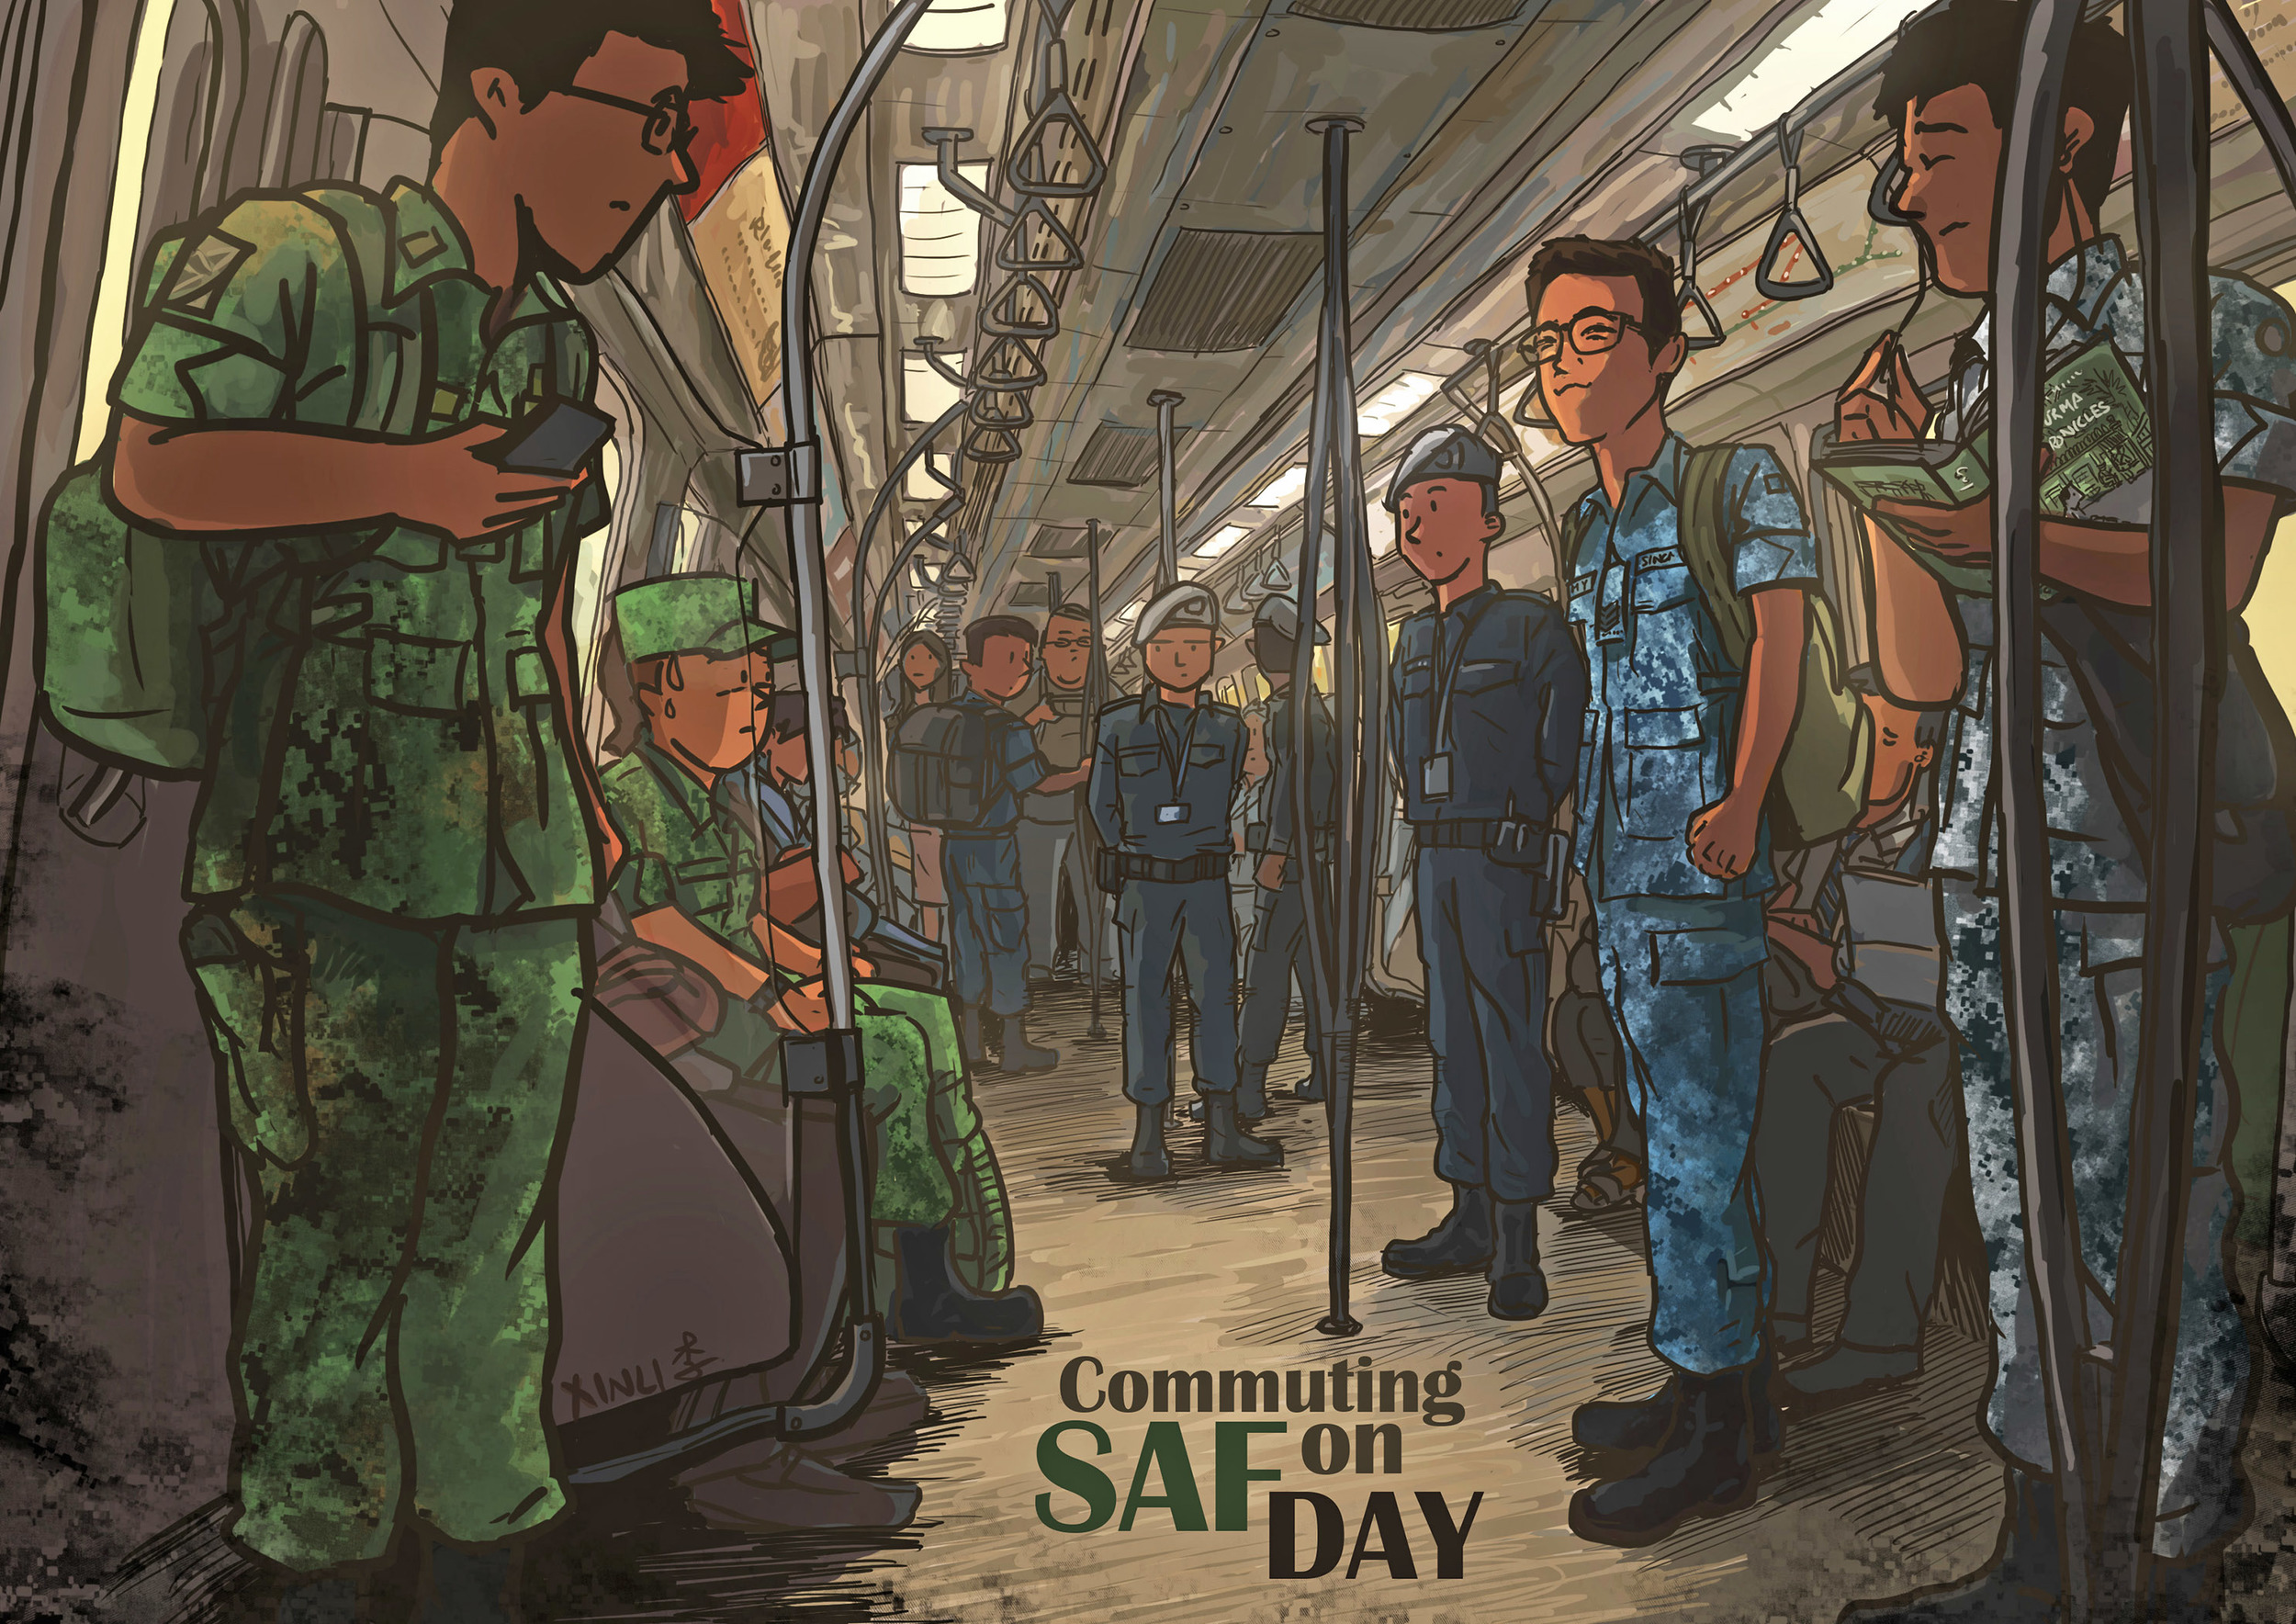 Commuting on SAF Day